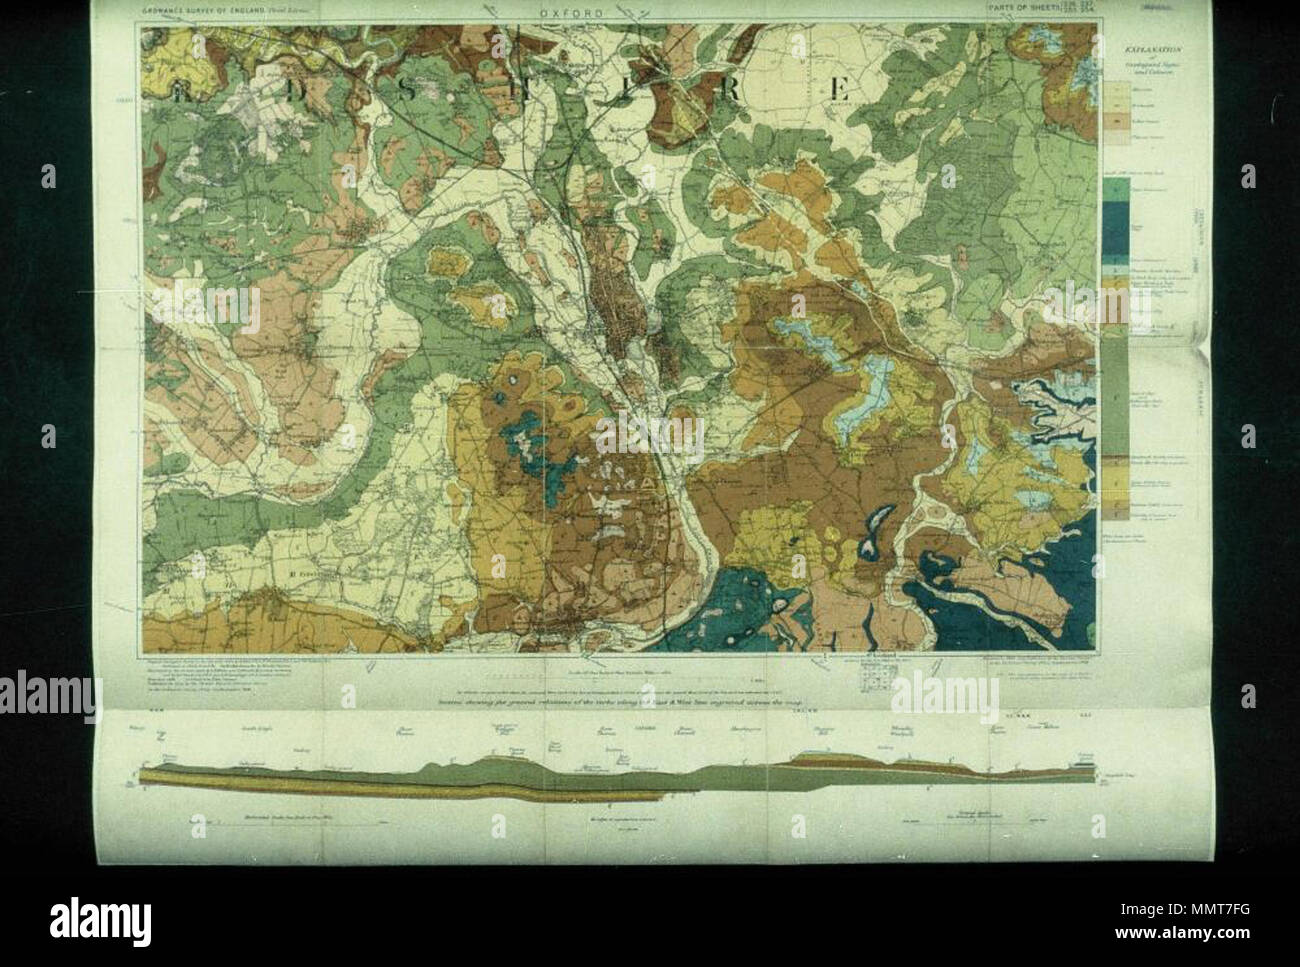 . Scale 1: 63,360. Composite of four sheets centred on Oxford  [Geological Survey of England and Wales: Oxford]. 1908. Bodleian Libraries, Geological Survey of England and Wales- Oxford - Stock Image